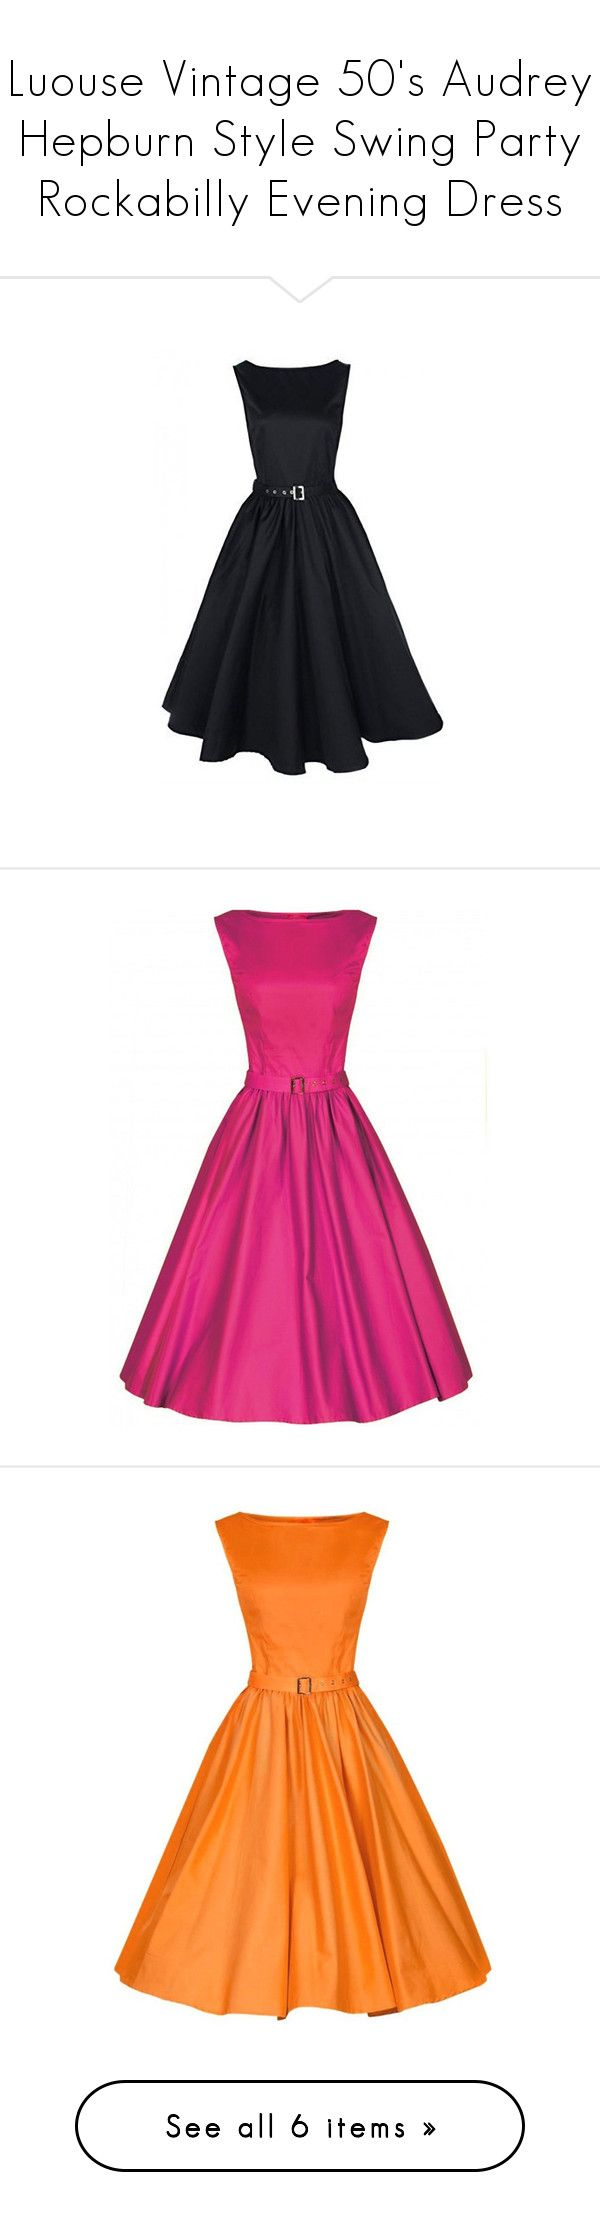 """""""Luouse Vintage 50's Audrey Hepburn Style Swing Party Rockabilly Evening Dress"""" by qwertyuiop-sparta ❤ liked on Polyvore featuring dresses, vintage dresses, rockabilly dresses, going out dresses, holiday party cocktail dresses, vintage rockabilly dresses, vintage party dresses, party dresses, orange dresses and cocktail party dress"""